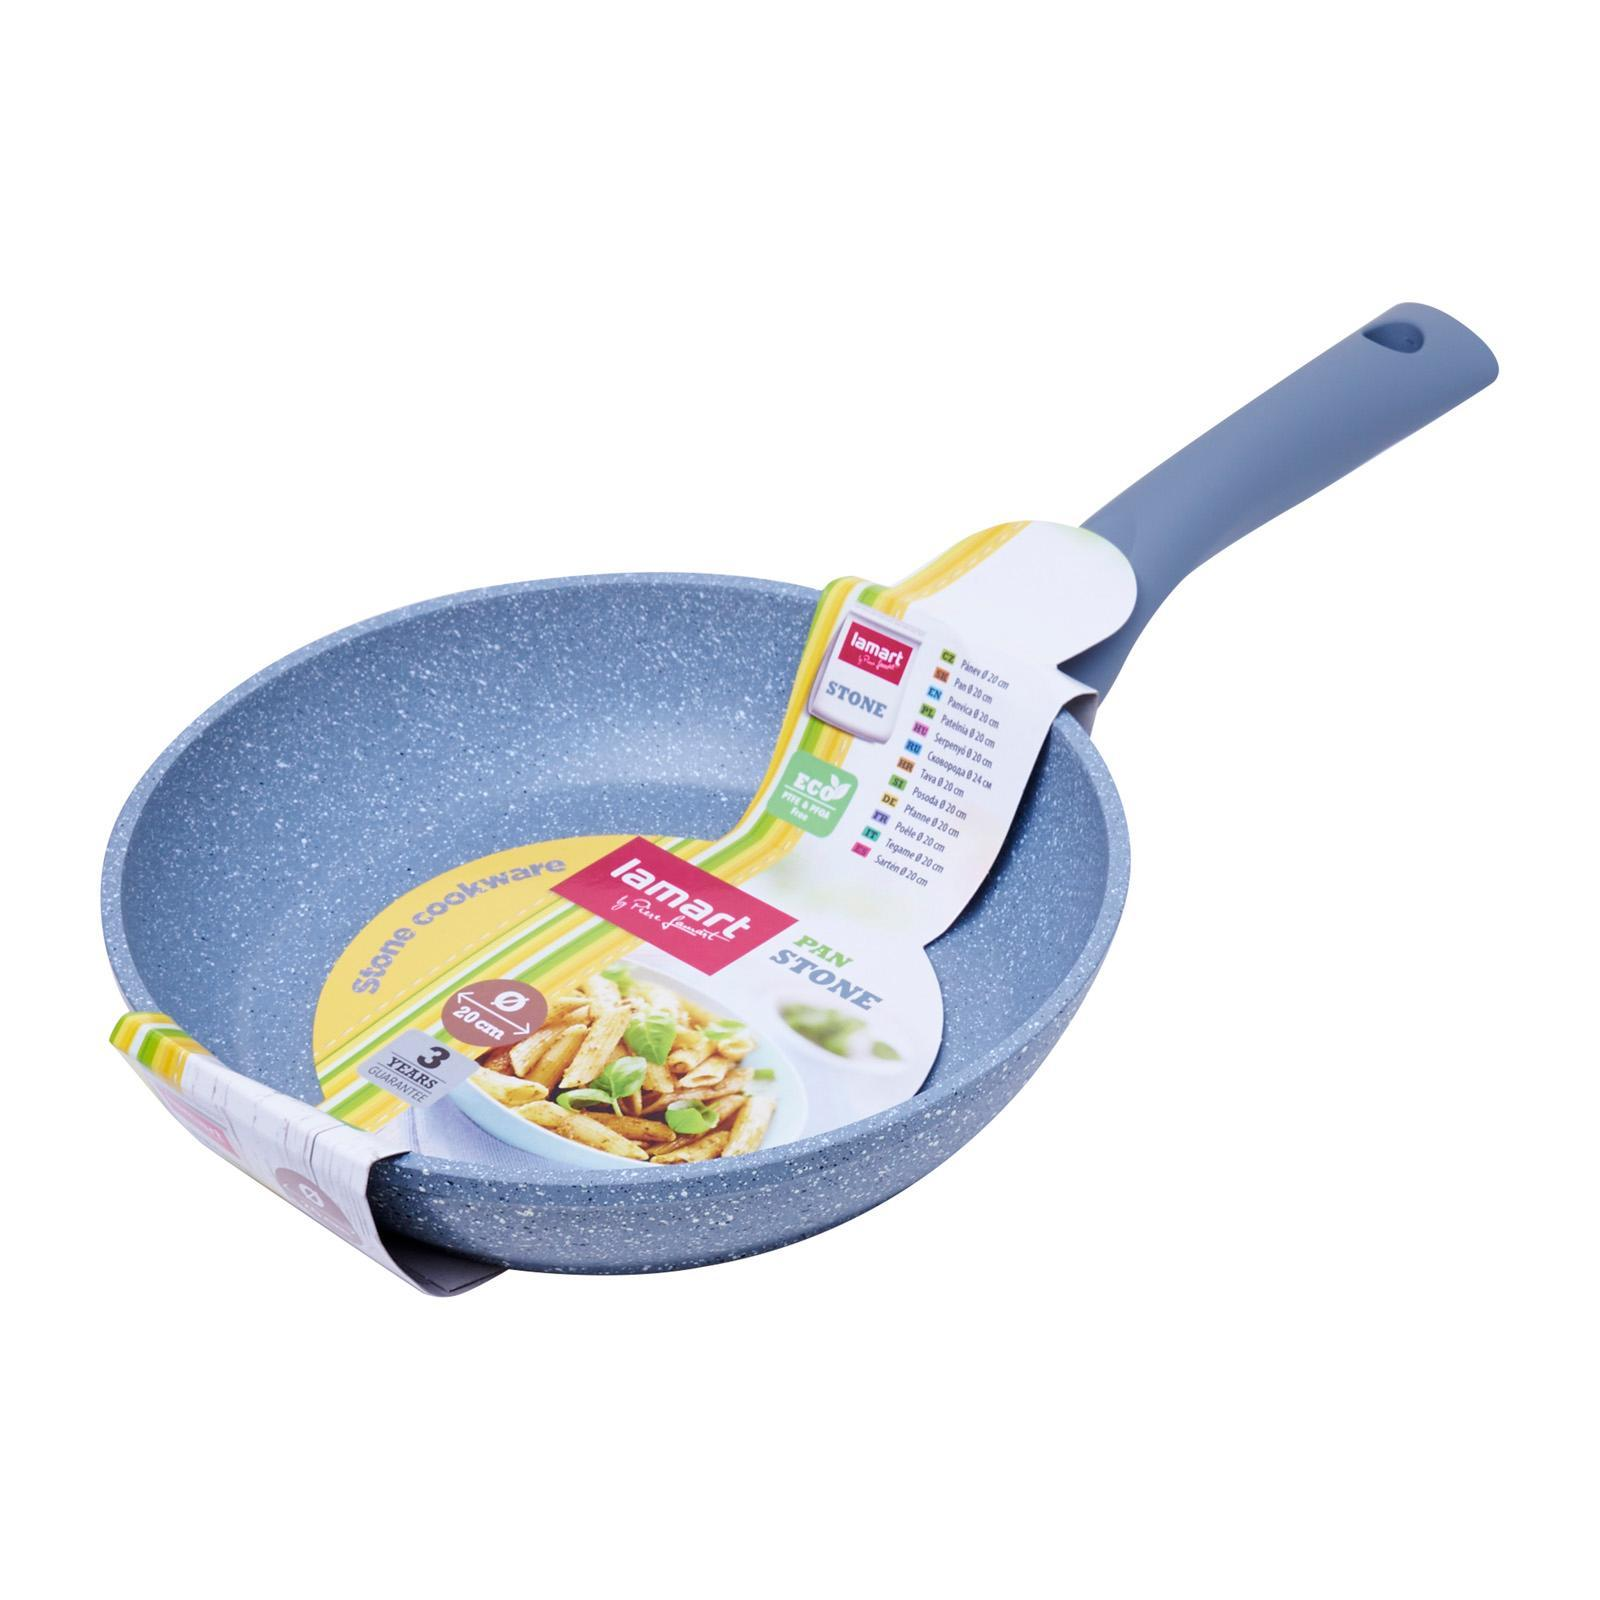 Lamart Induction Ready Marble Stone Fry Pan 20X4.2Cm